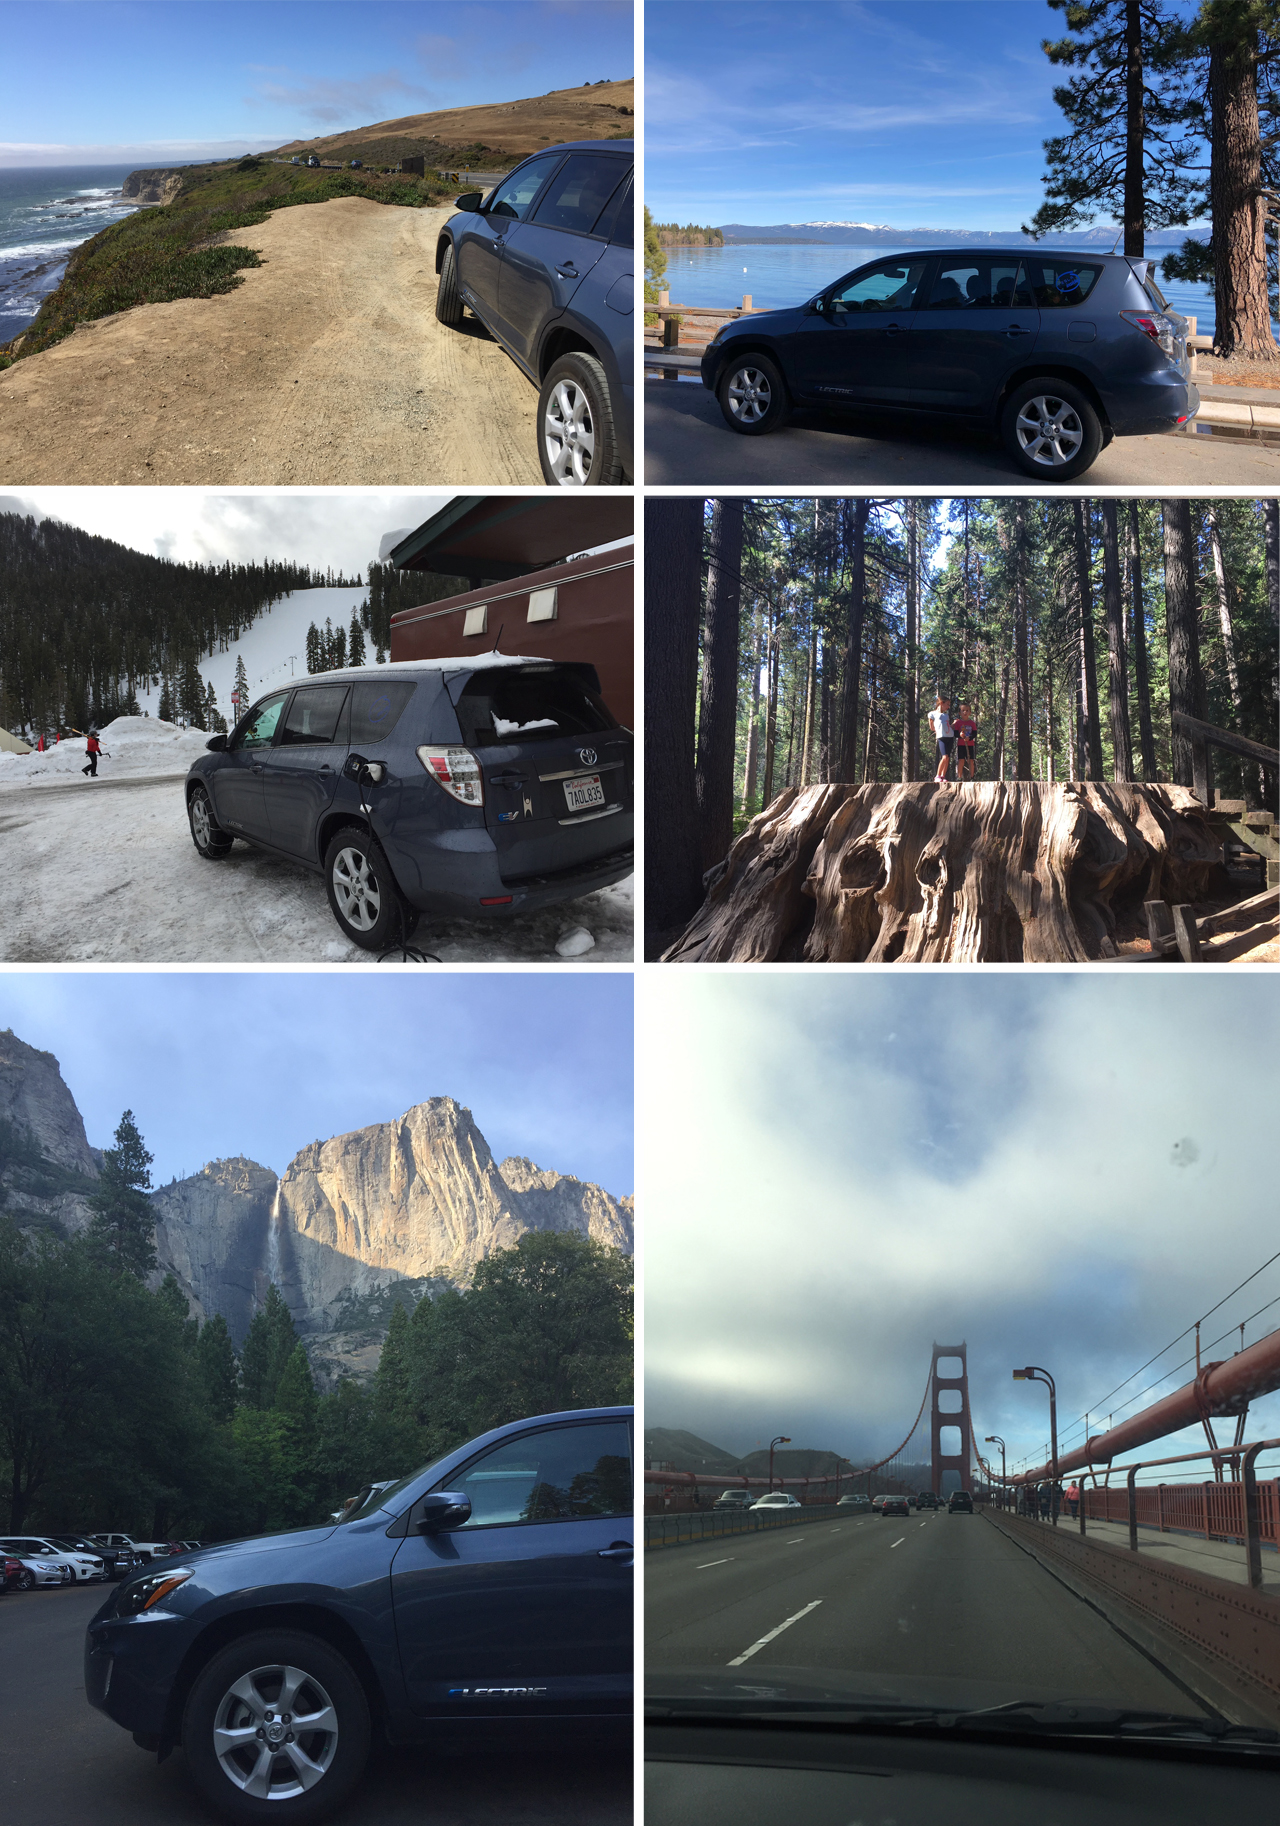 Great memories from trips to Monterey, Lake Tahoe, Calaveras Big Trees State Park, Yosemite and many, many visits to the Bay Area.